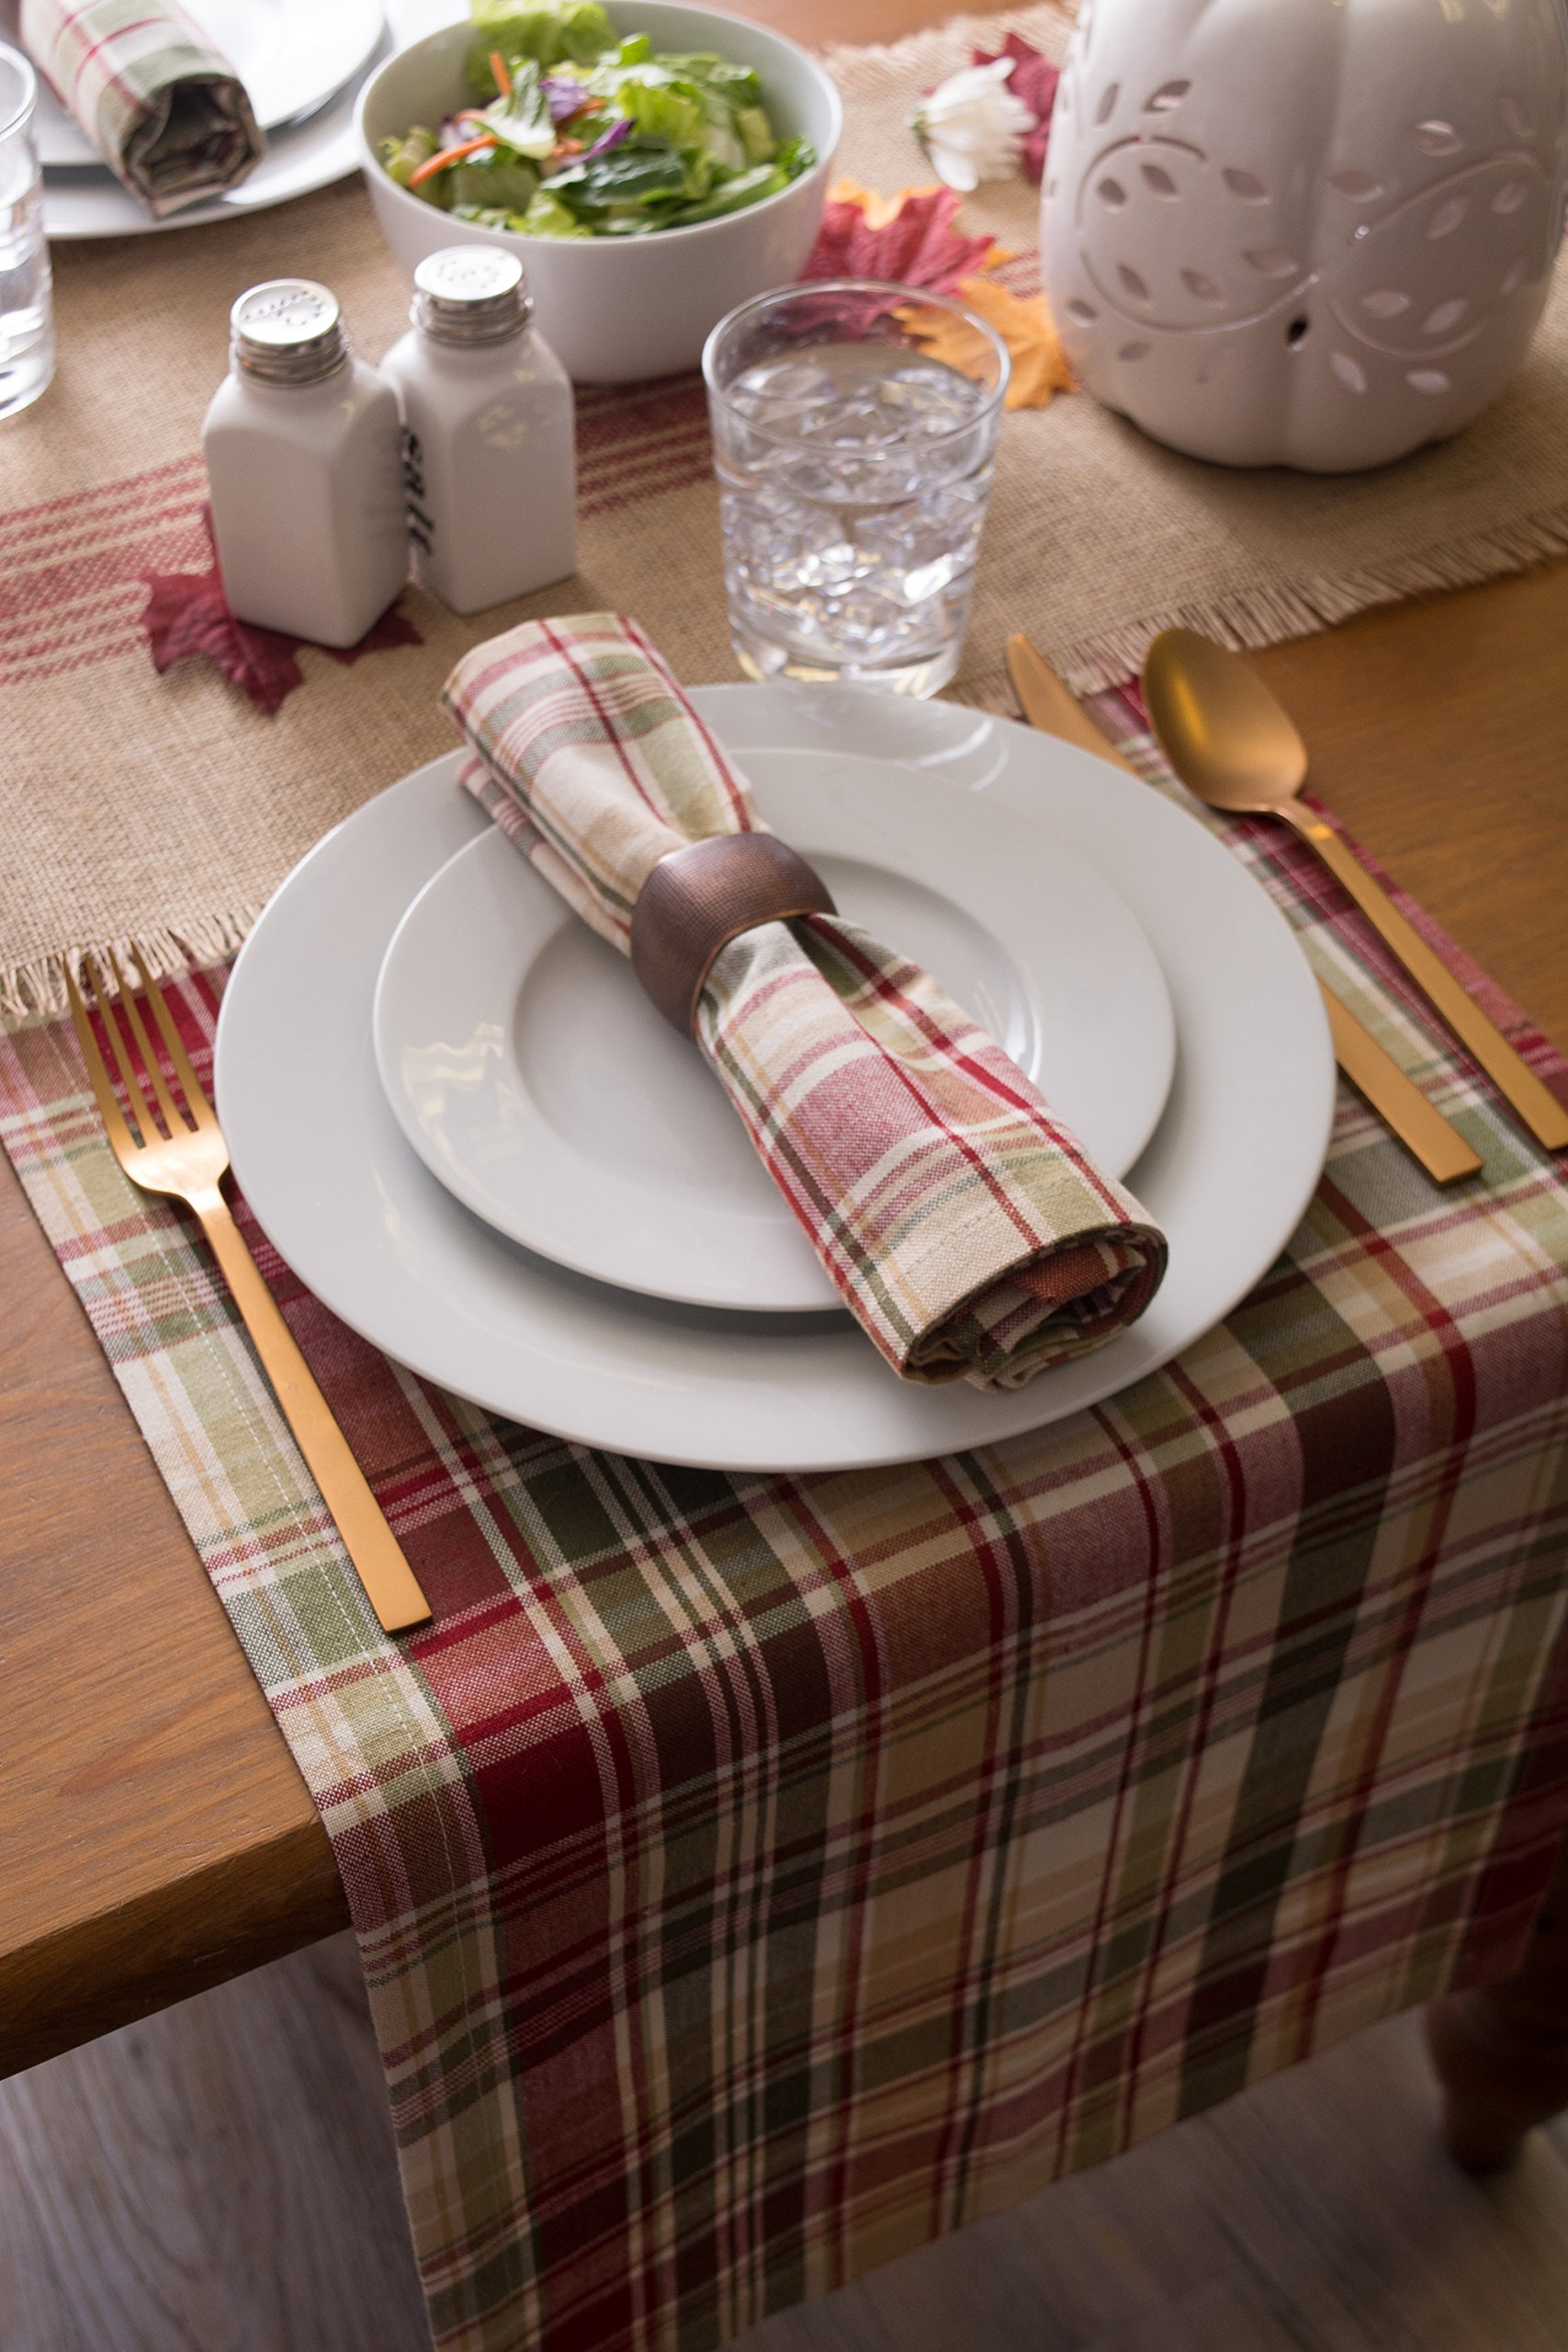 Cabin Plaid 100% Cotton Table Runner (14x108'') by DII (Image #4)